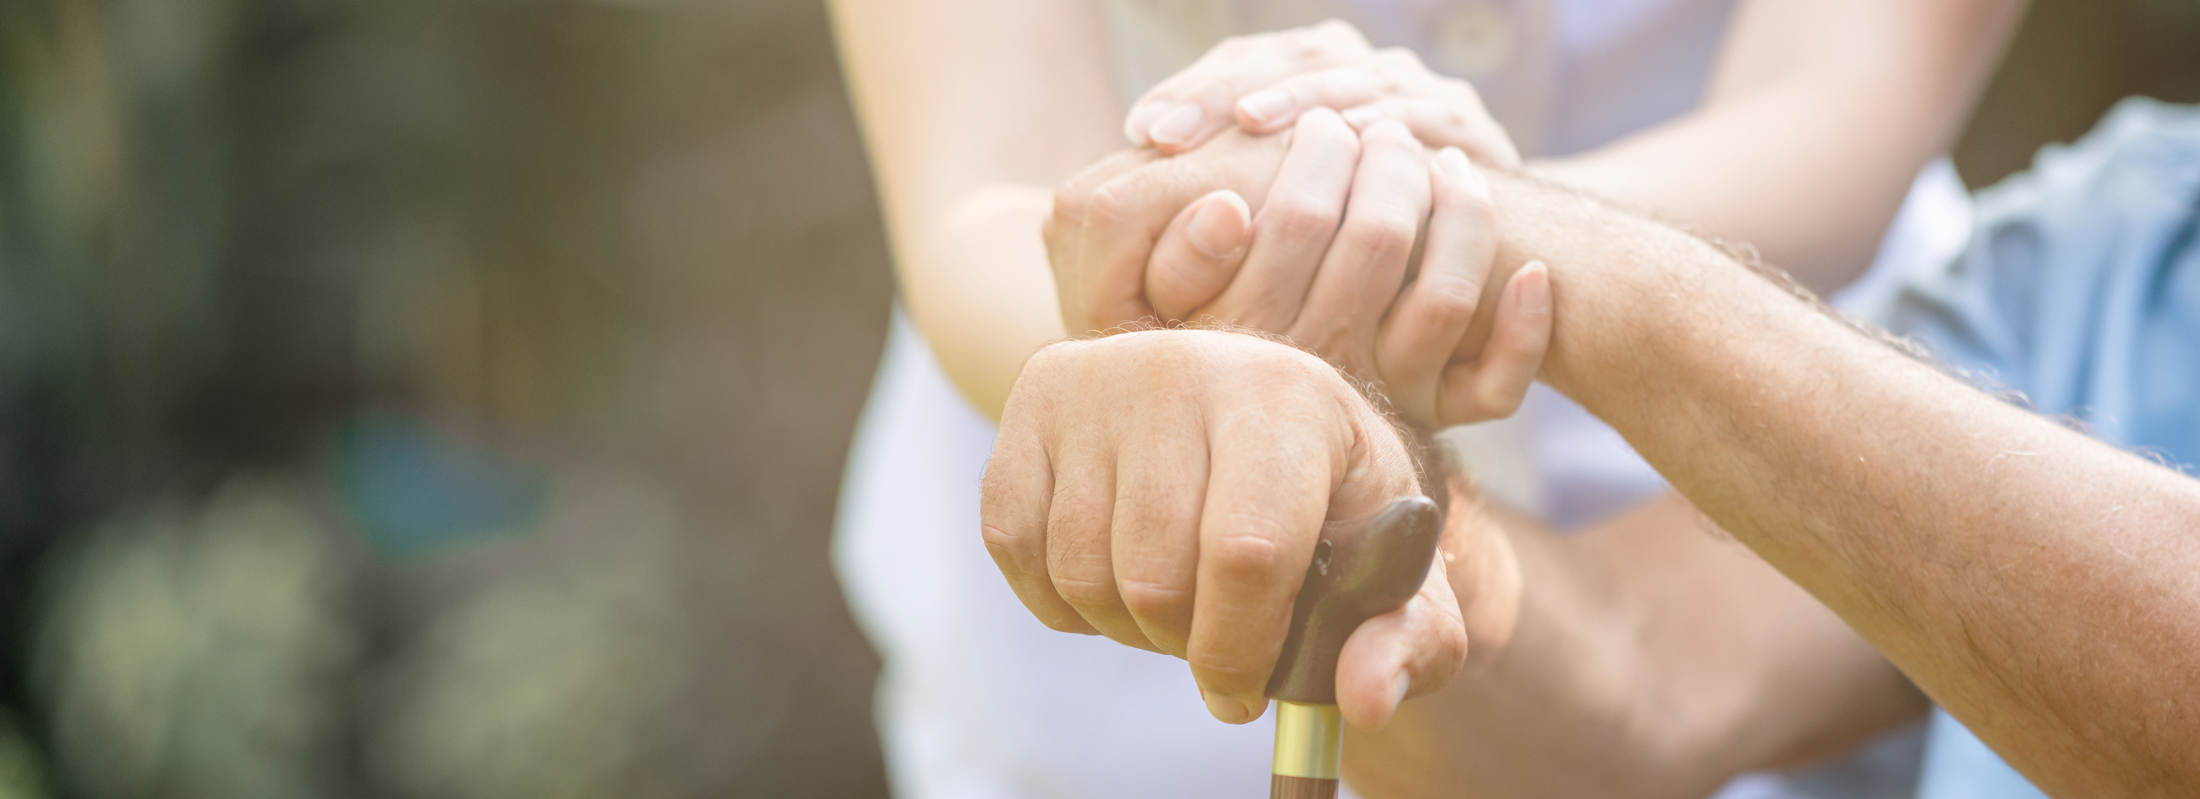 Image of hands clasped together in partnership